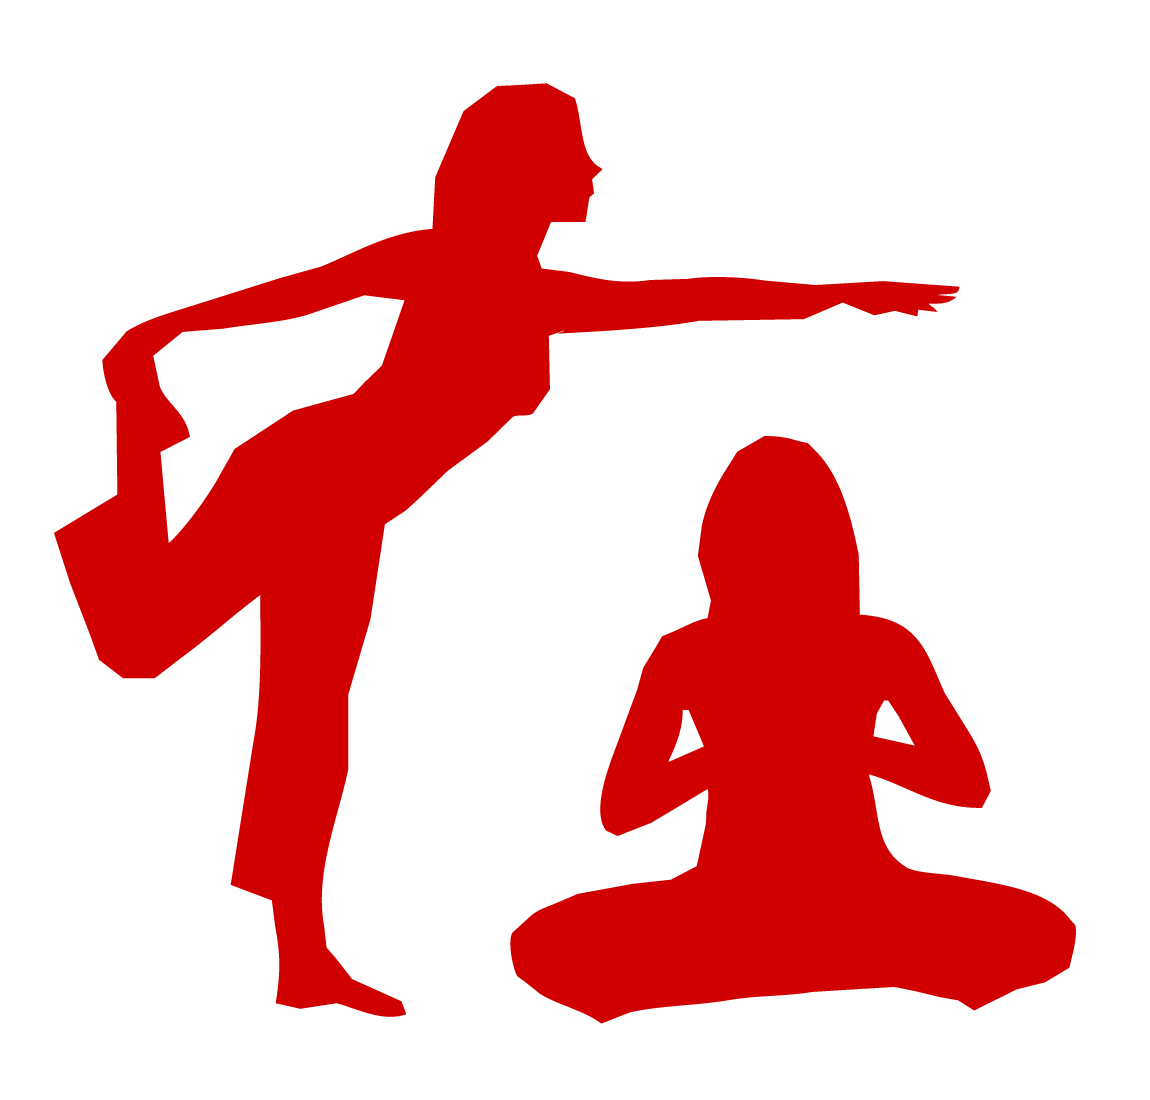 Exercising clipart exercise class. Leisure yoga pencil and